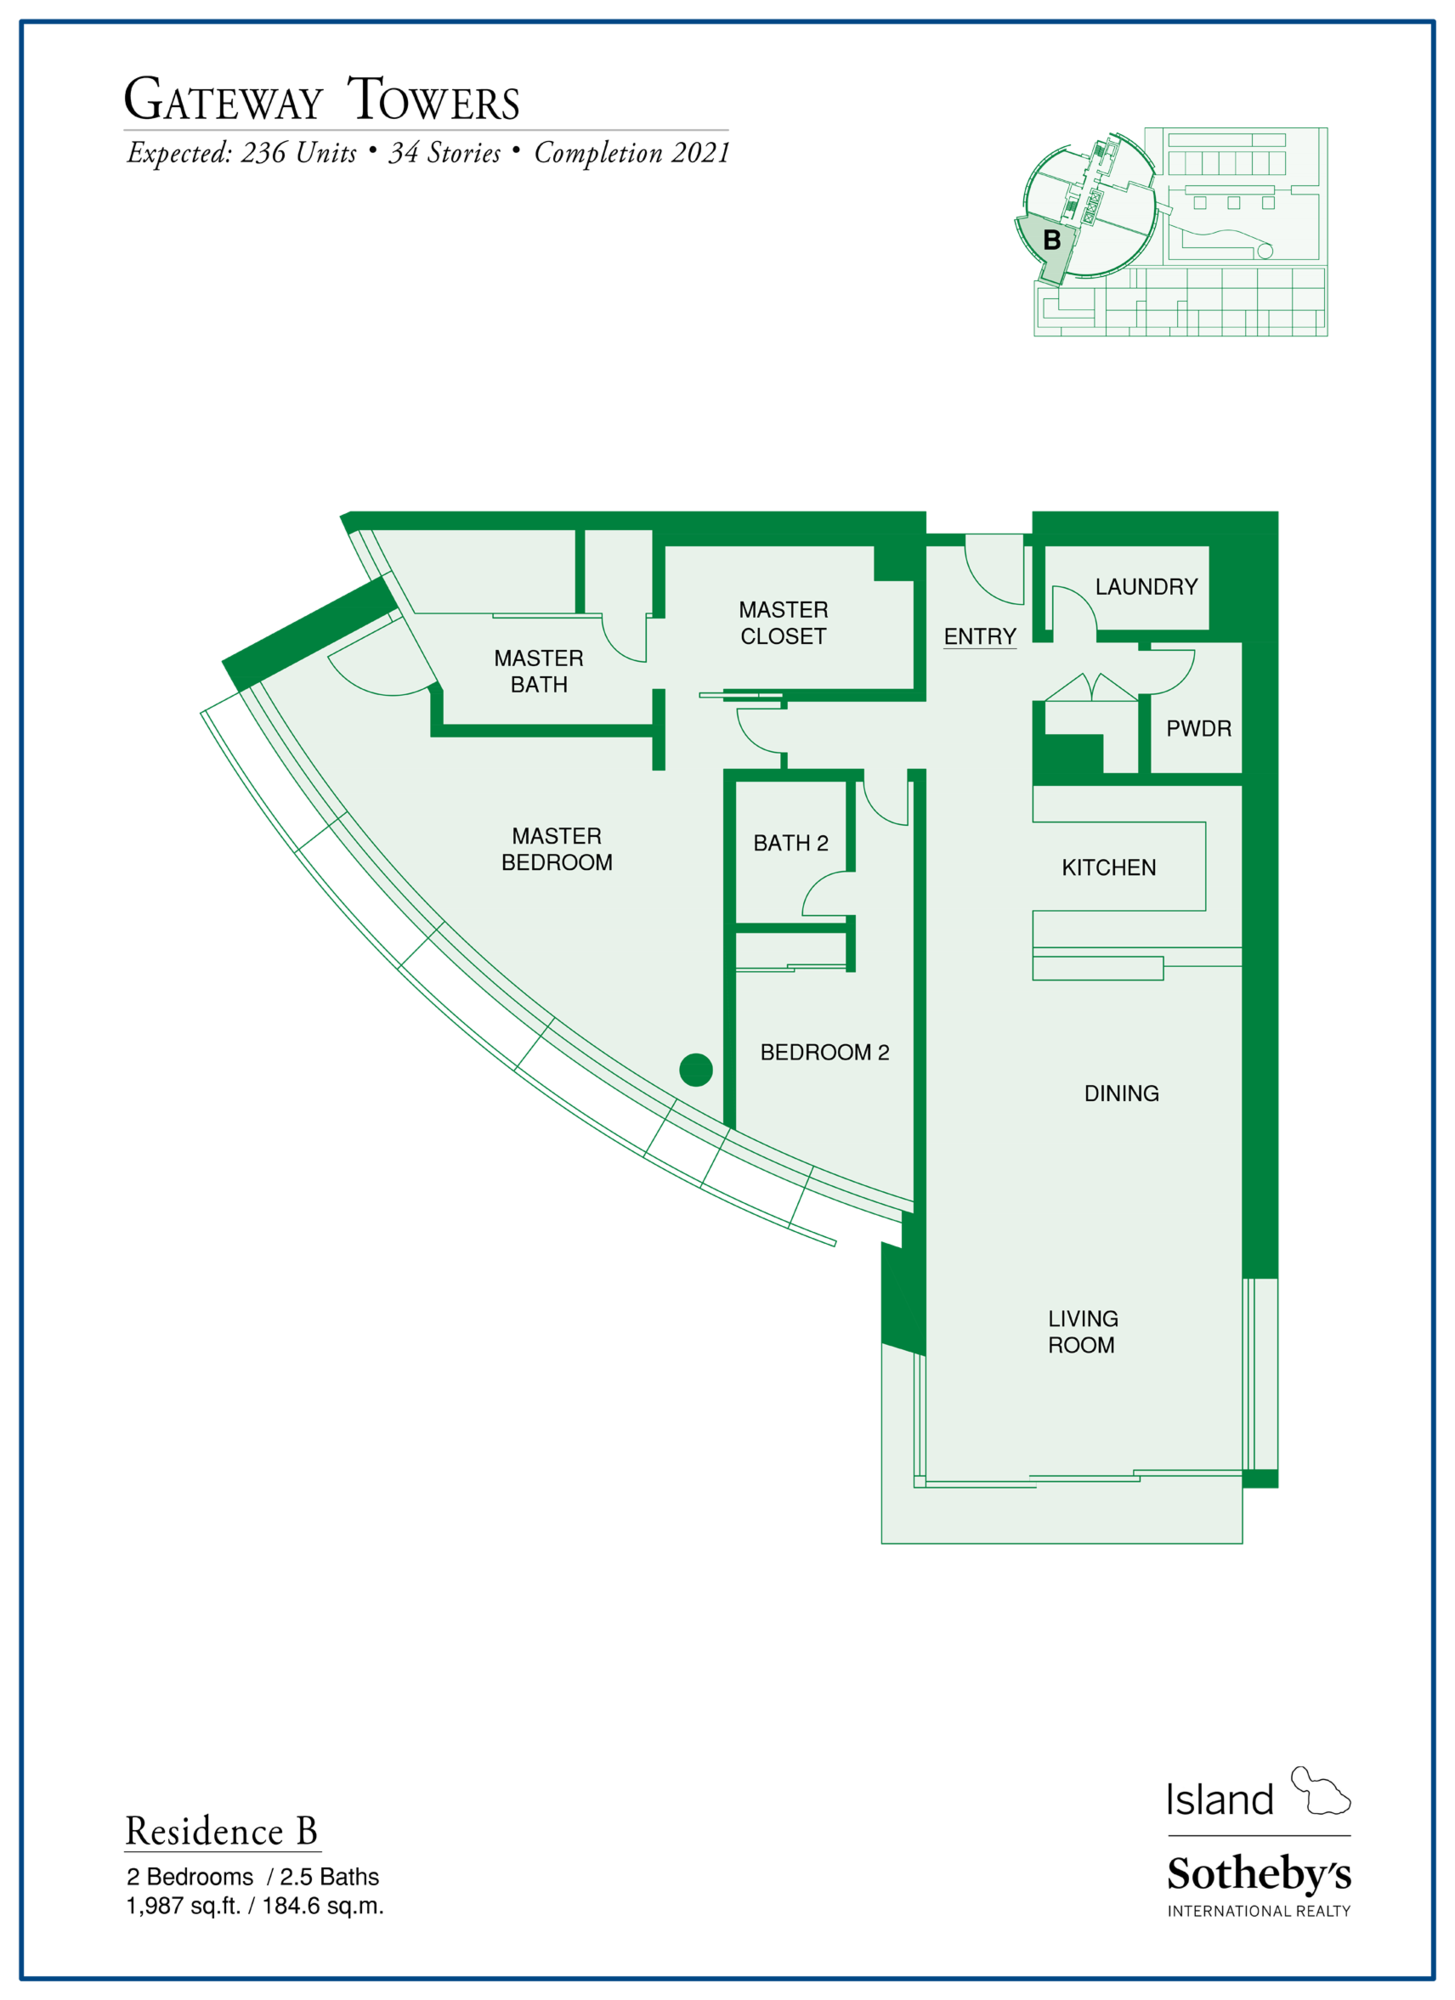 Gateway Towers Honolulu Floor Plan B